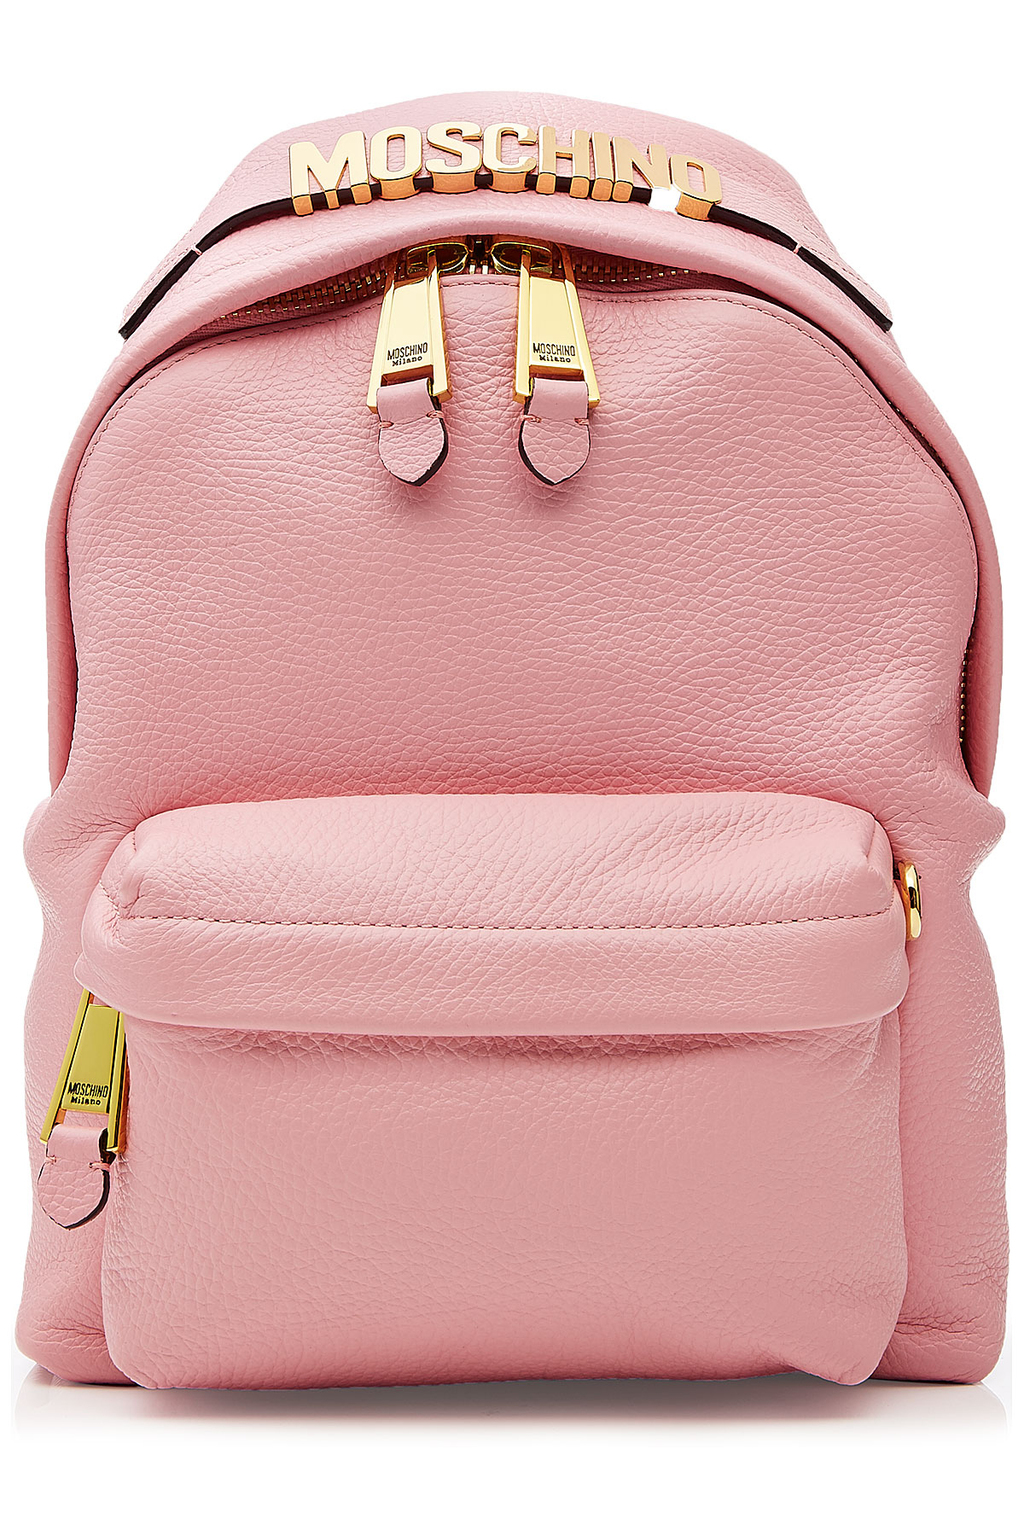 Leather Backpack With Gilded Logo Embellishment Magenta - predominant colour: pink; occasions: casual, creative work; type of pattern: standard; style: rucksack; length: rucksack; size: standard; material: leather; pattern: plain; finish: plain; season: s/s 2016; wardrobe: highlight